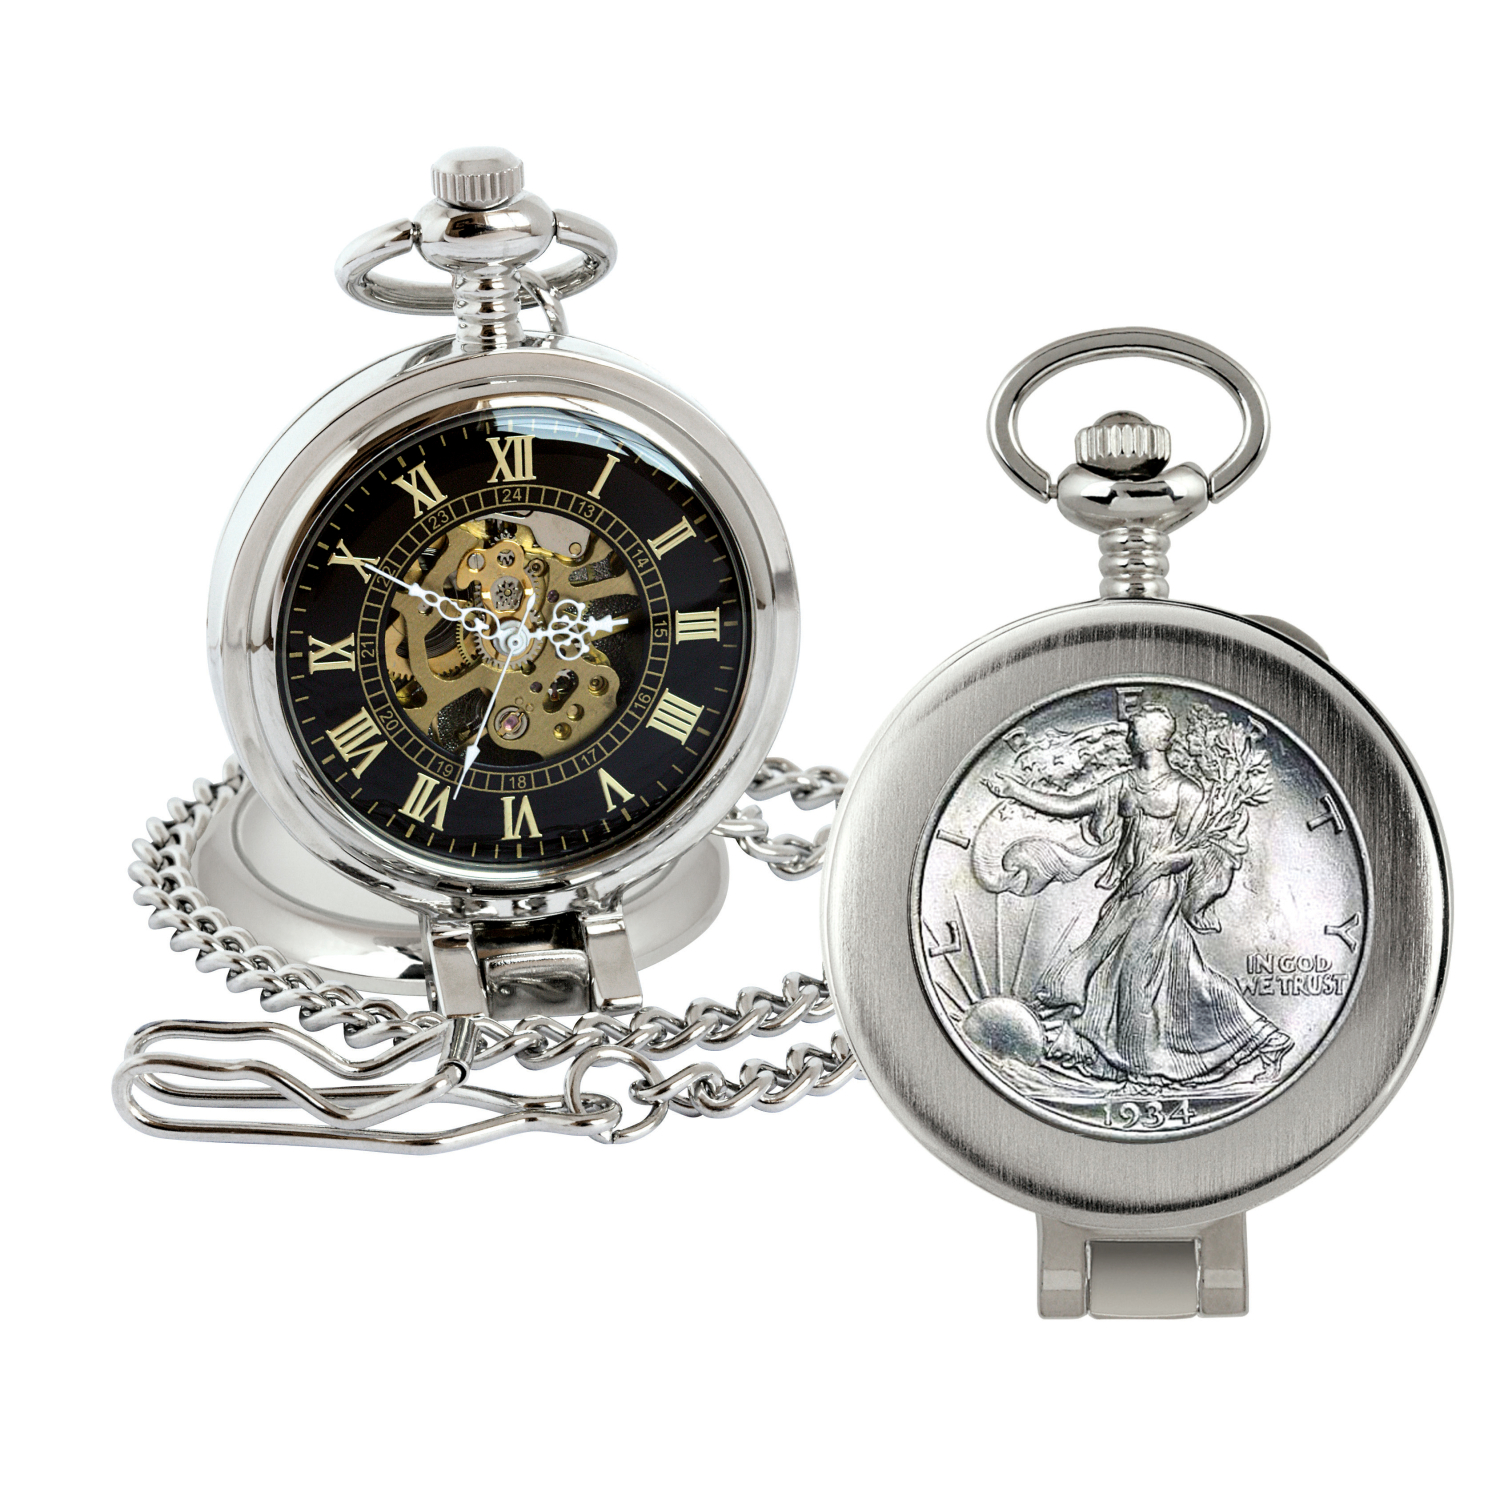 Silver Walking Liberty Half Dollar Coin Pocket Watch With Skeleton Movement - Magnifying Glass - Black Dial With Gold Roman Numerals